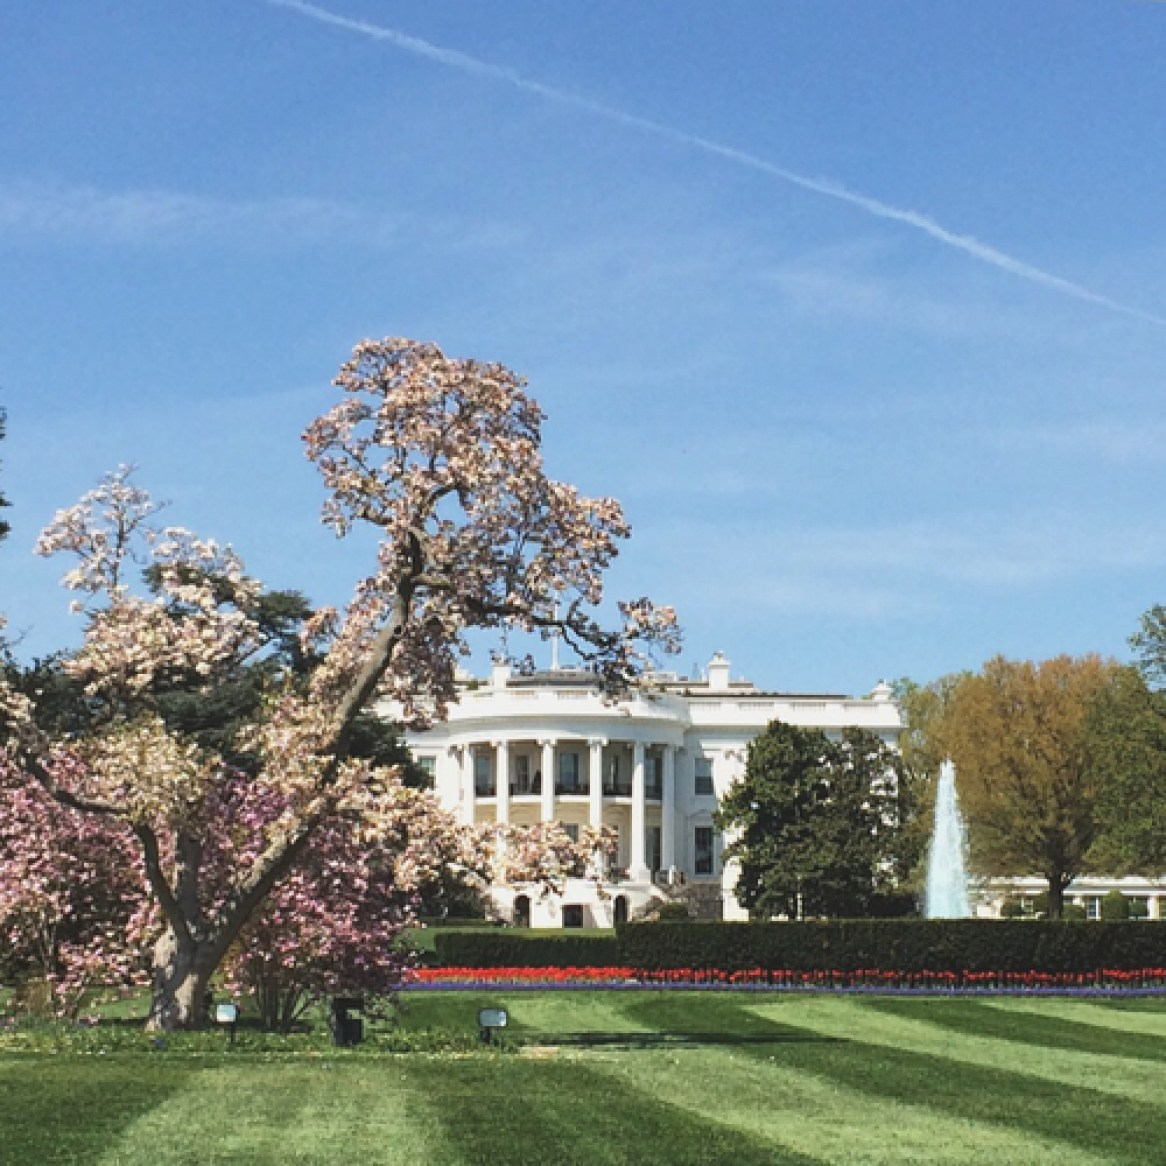 cool White House pic